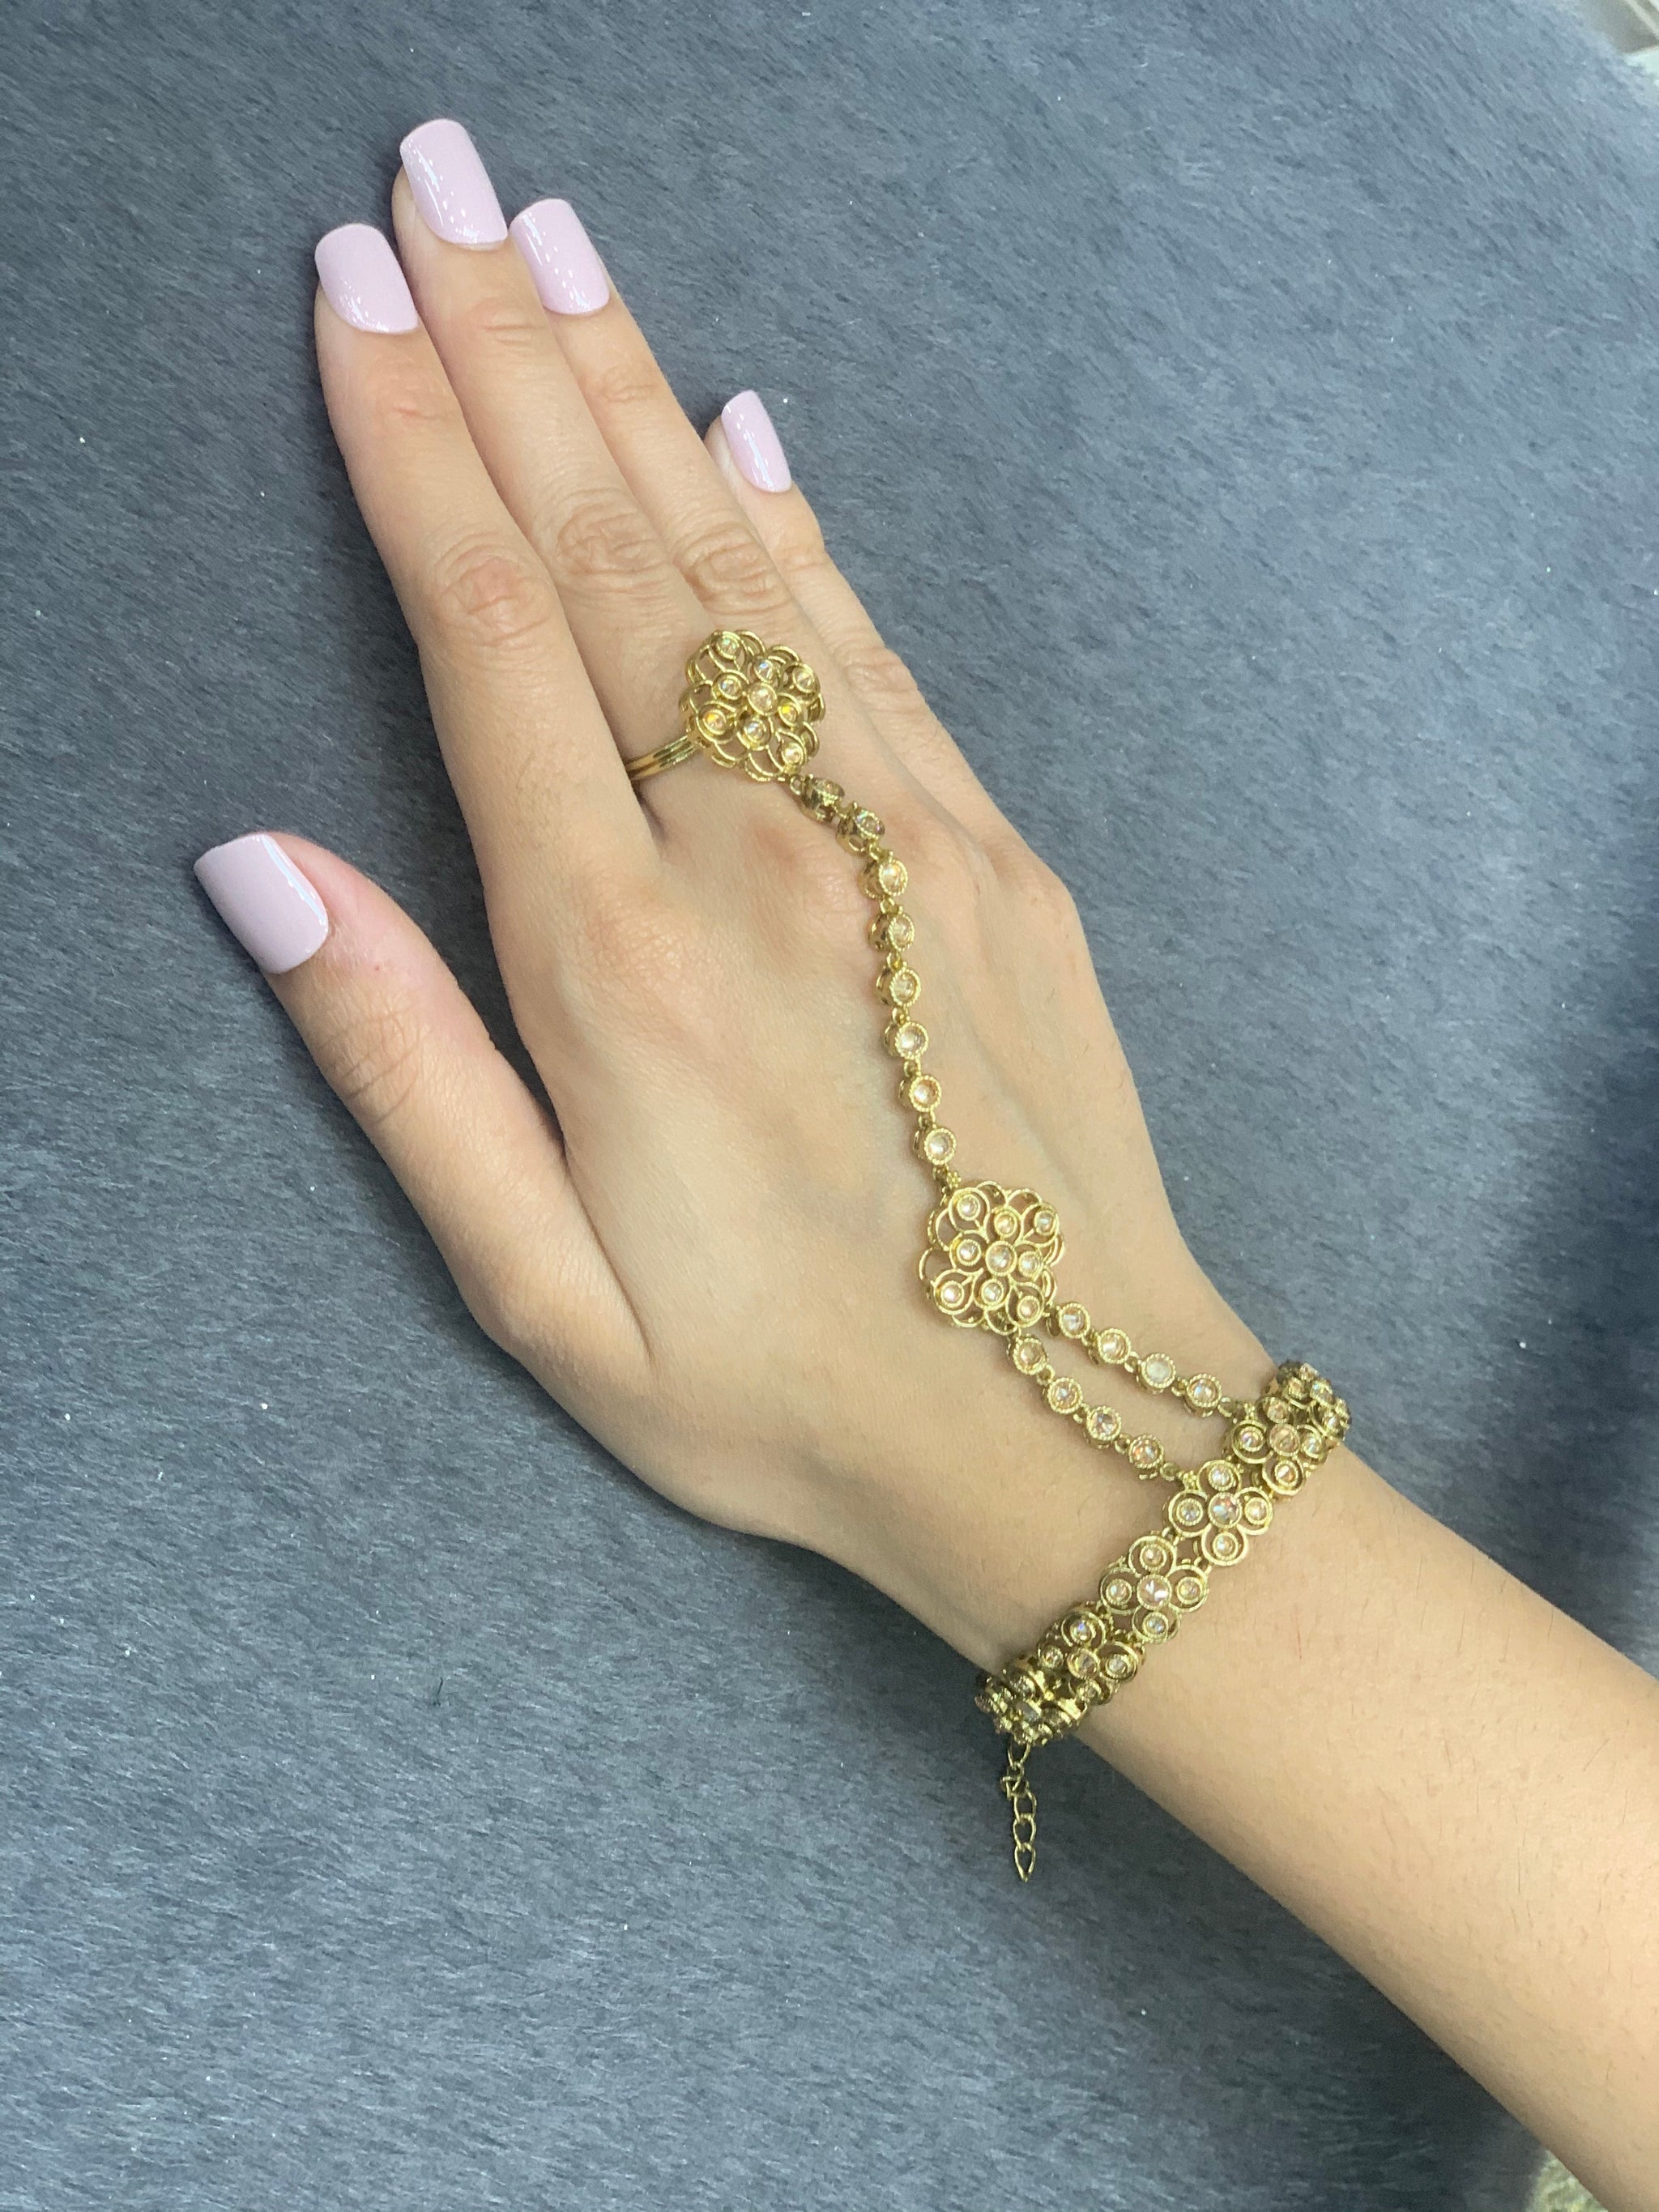 Gold Indian  hand jewelry (set of 2) Wedding bridal accessories, Adjustable ring & bracelet,Traditonal hathphool/hand panja,